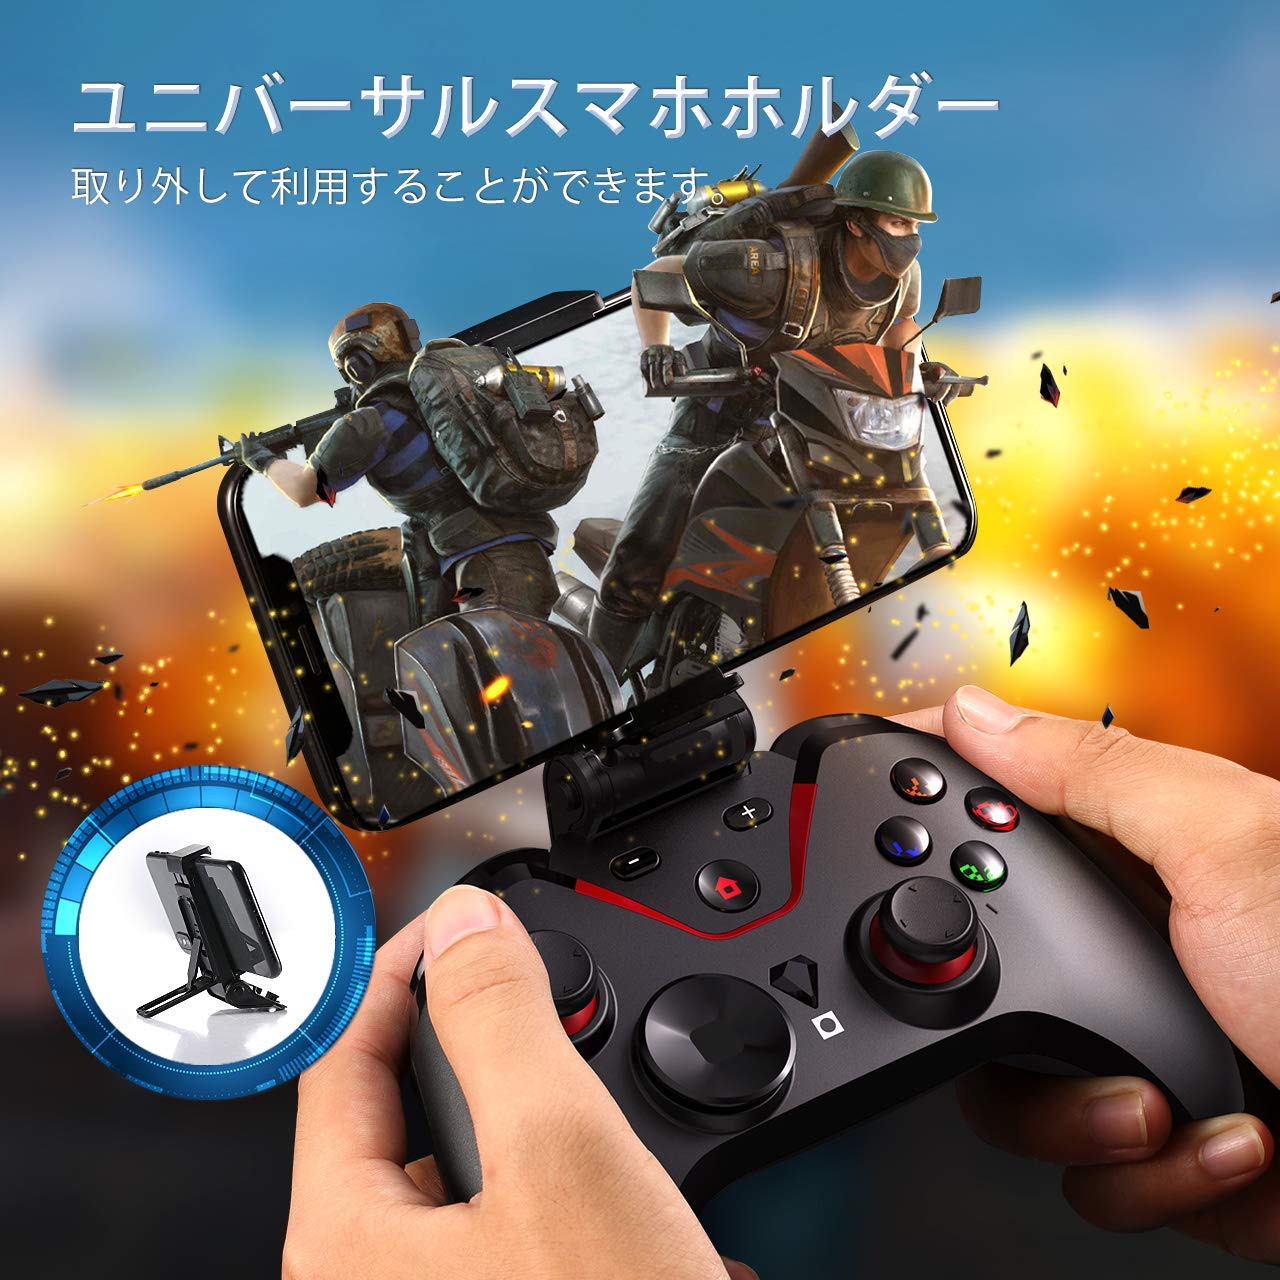 Qeome For Switch/Android/PC/PS3 Game Controller Gamepad Joystick Mobile Phone bluetooth for Chicken game